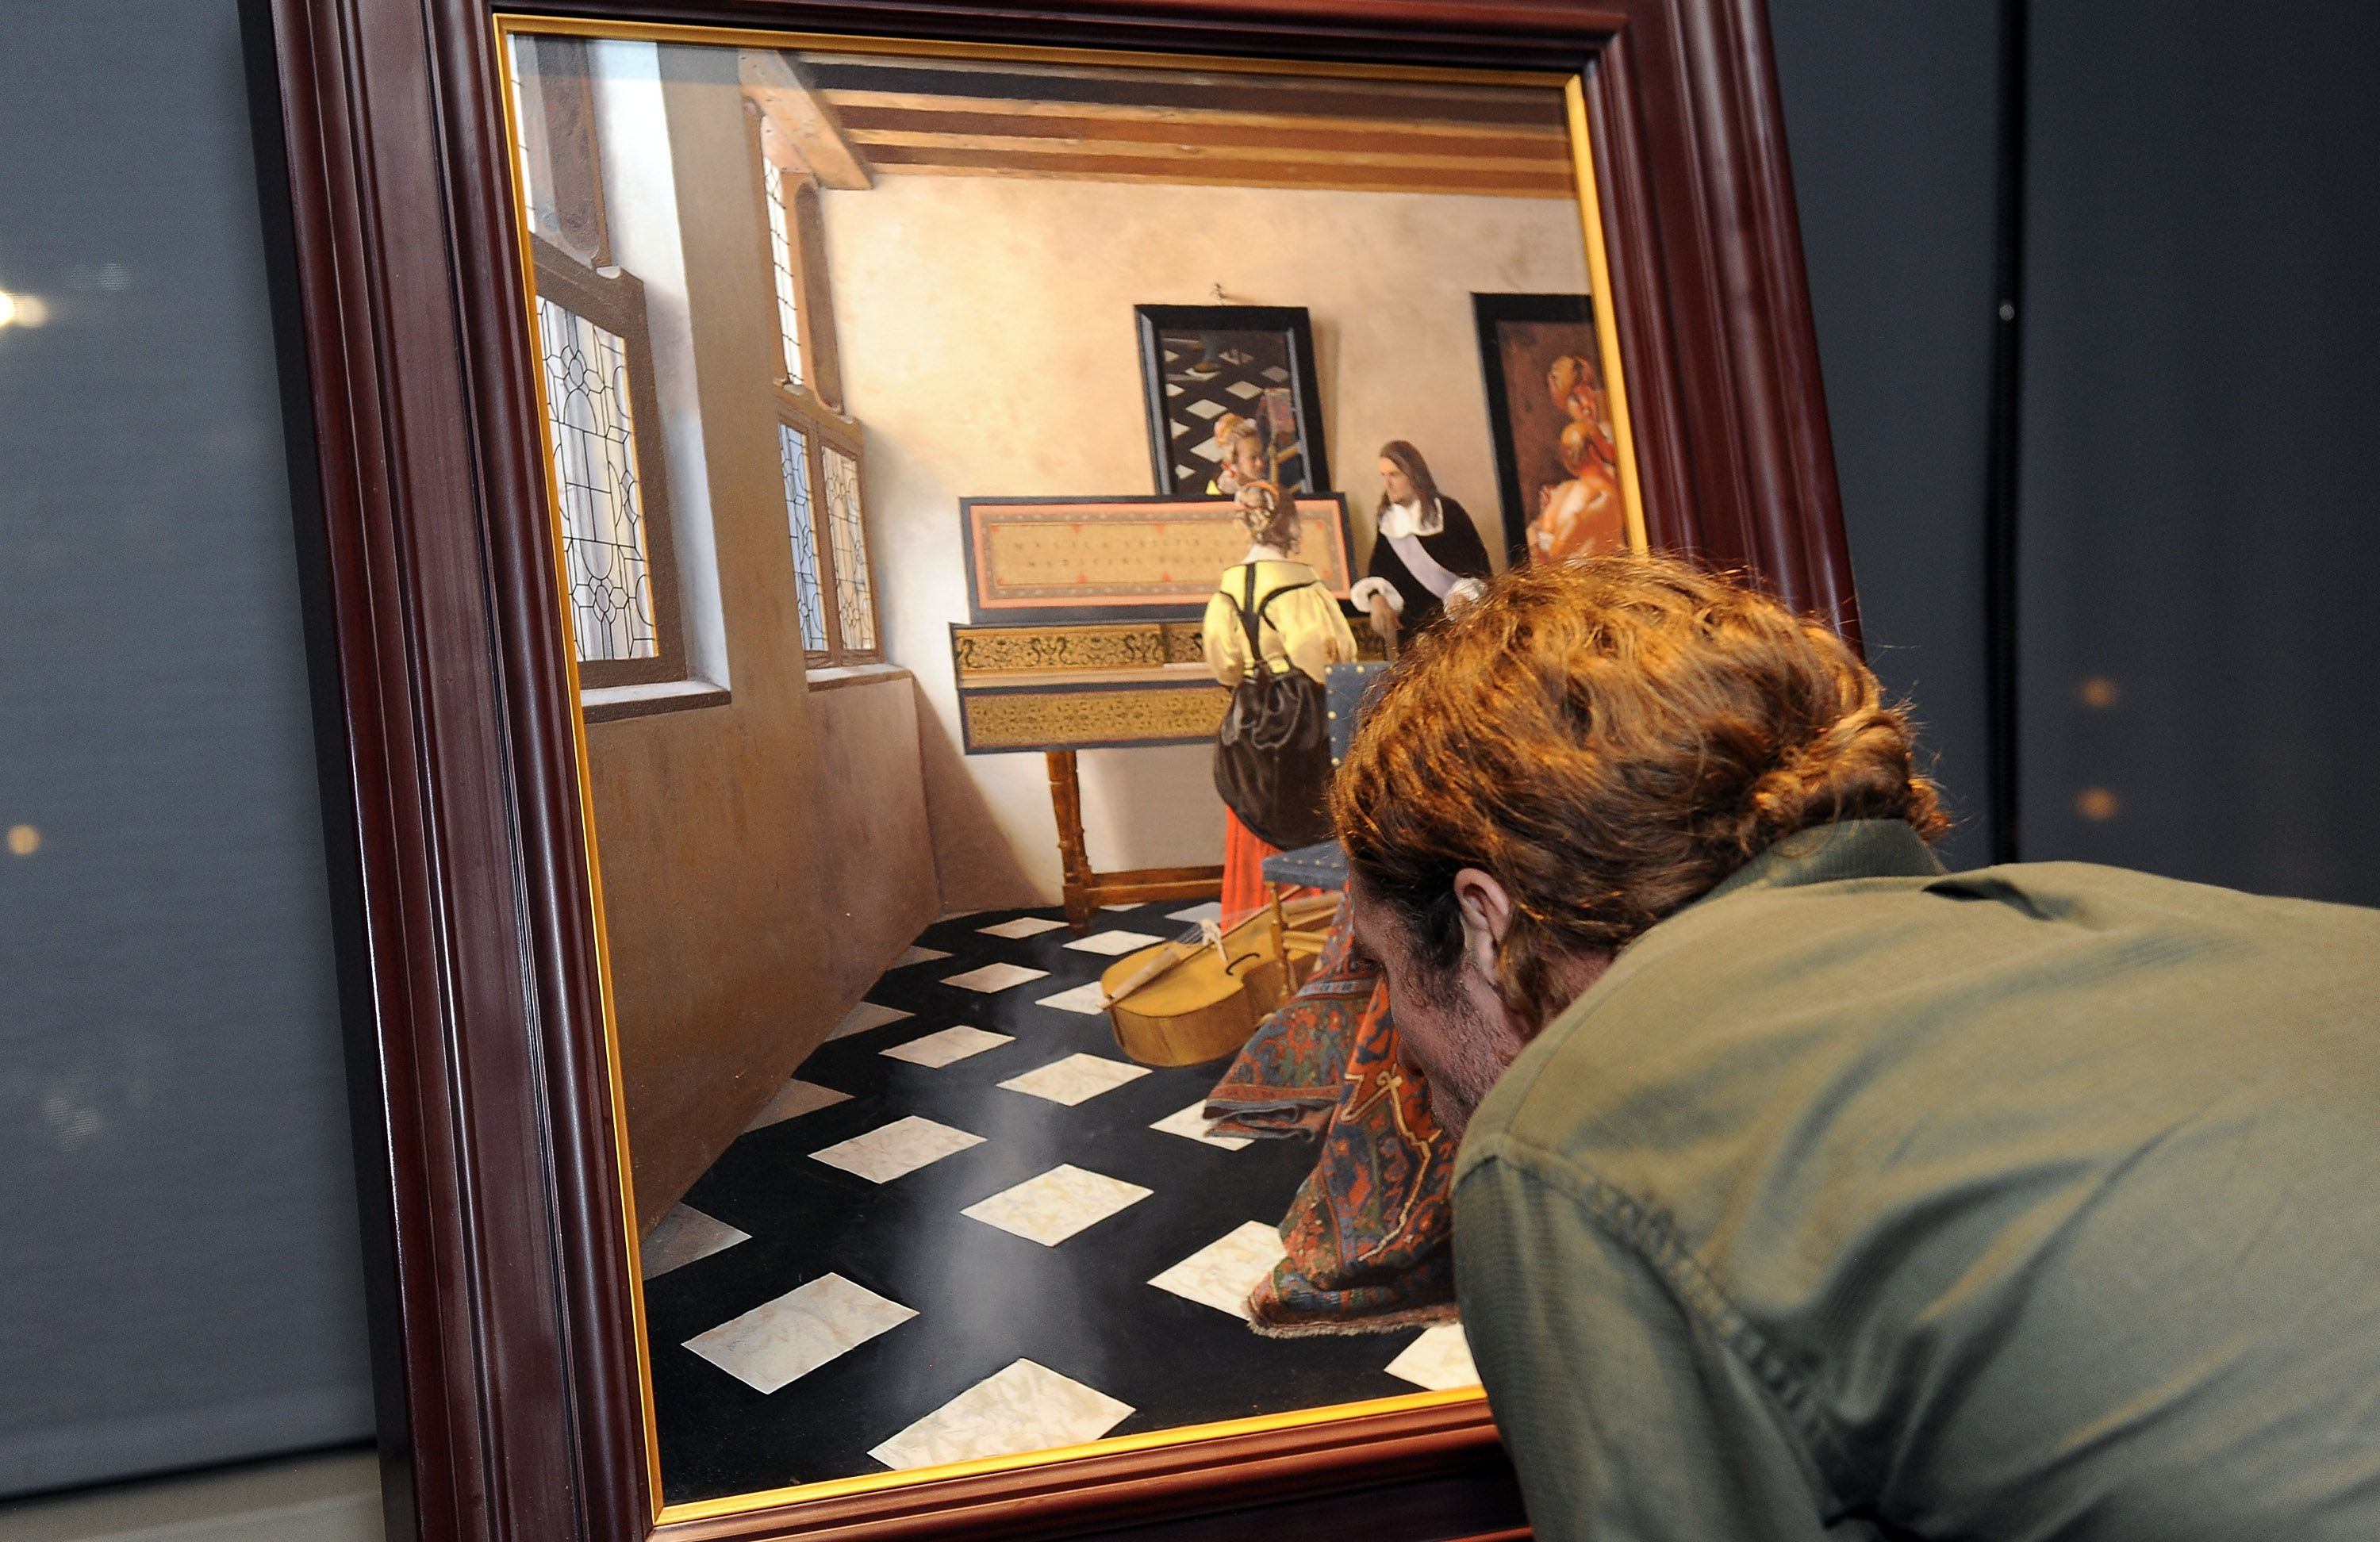 The Camera Obscura And Painting